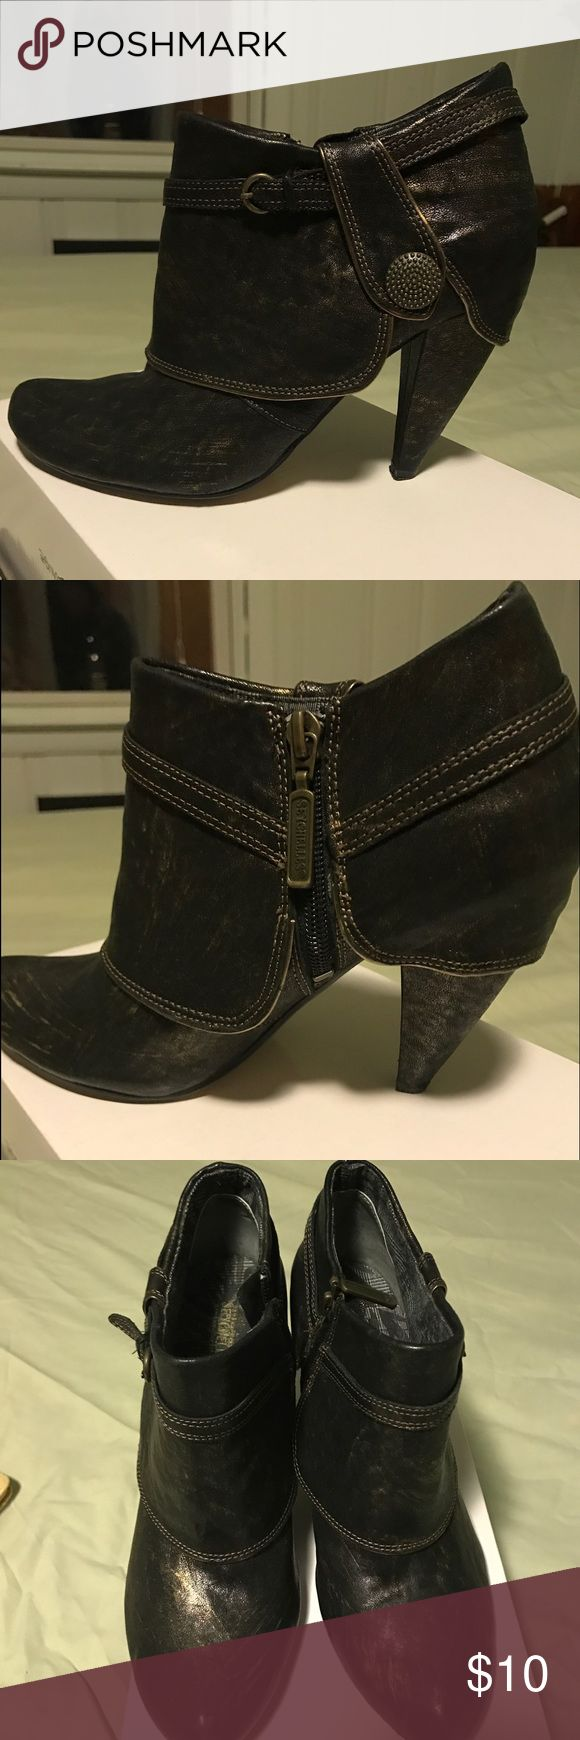 Women's Boots Ankle ladies black boots size 6.5 Sychelles Shoes Ankle Boots & Booties